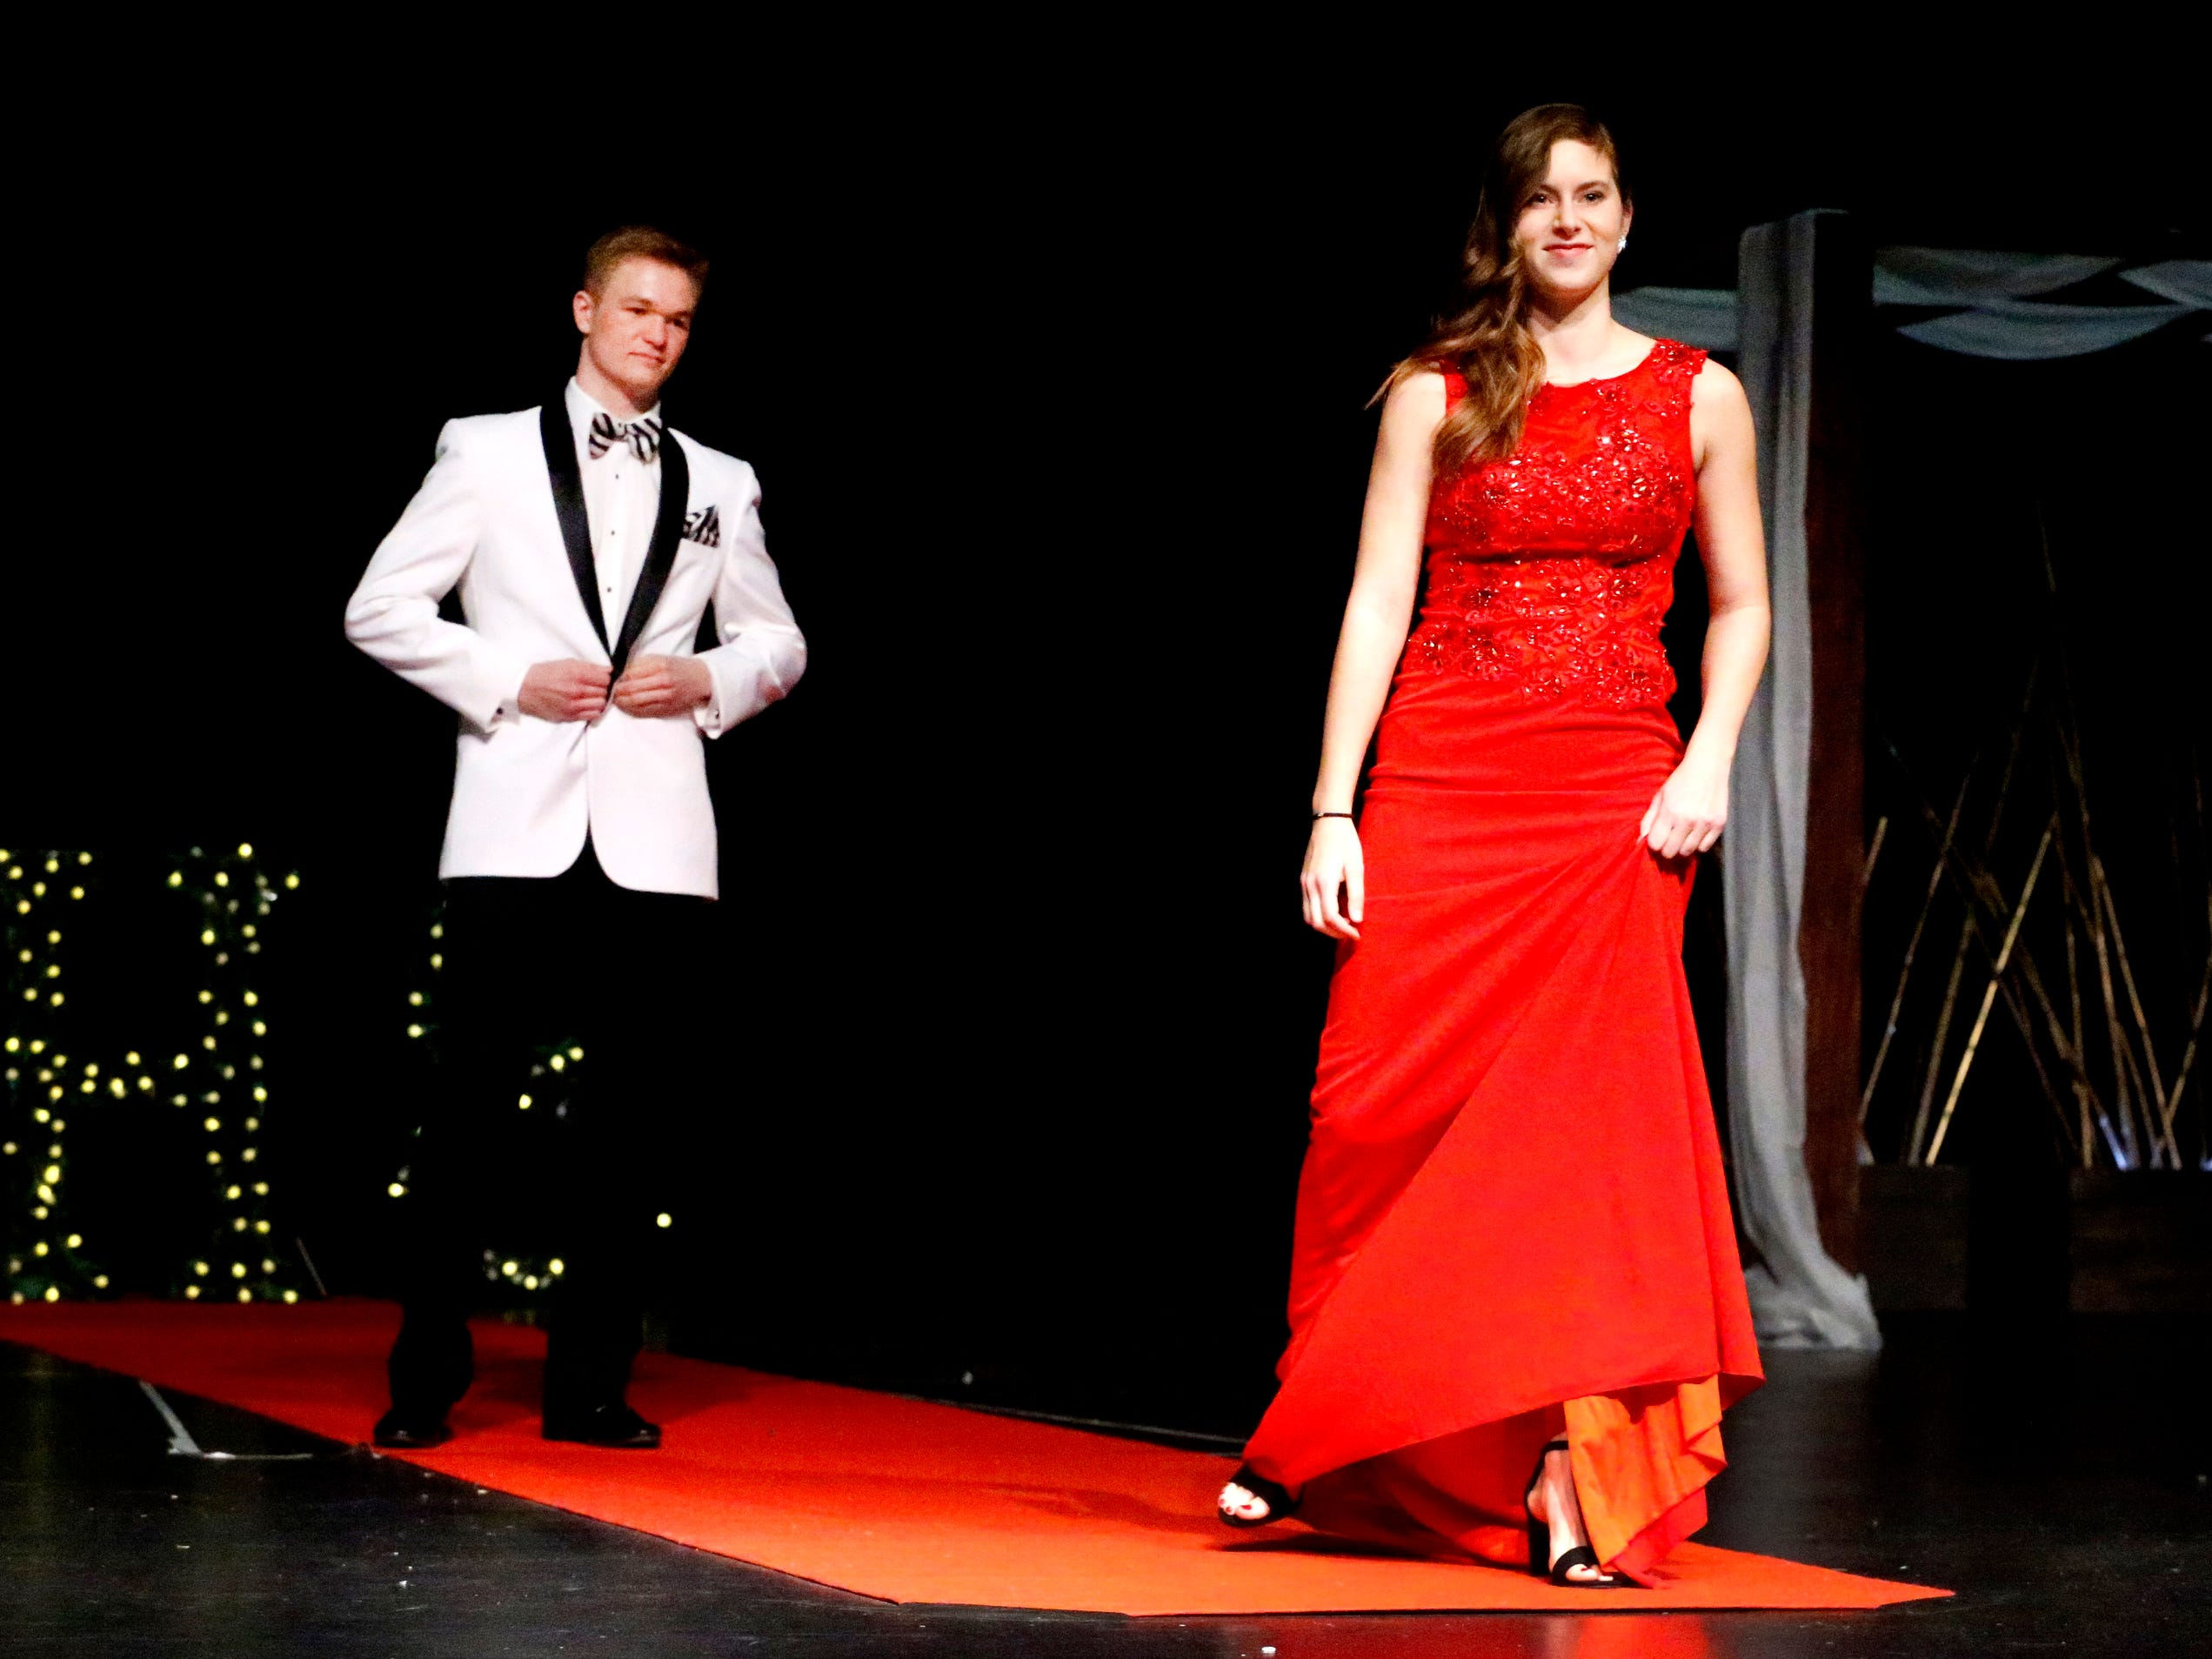 Reannah Remkus steps forward to show off her dress as Tristan Baker waits to show off his tux during the Siegel Prom Fashion show on Thursday, Feb. 14, 2019.